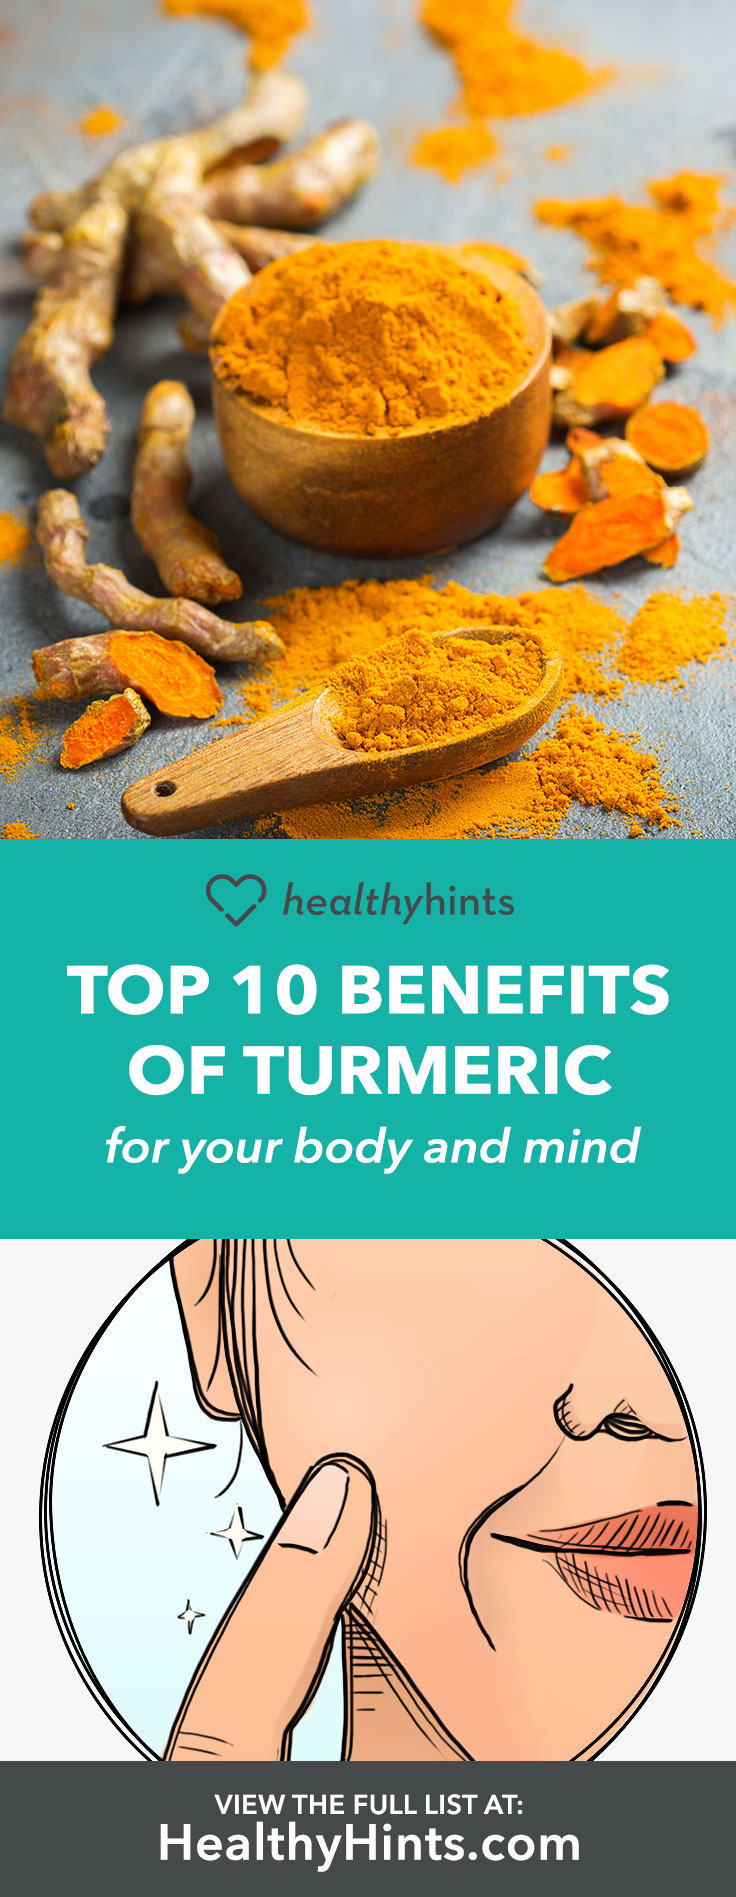 10 benefits of turmeric for a healthy body and mind.